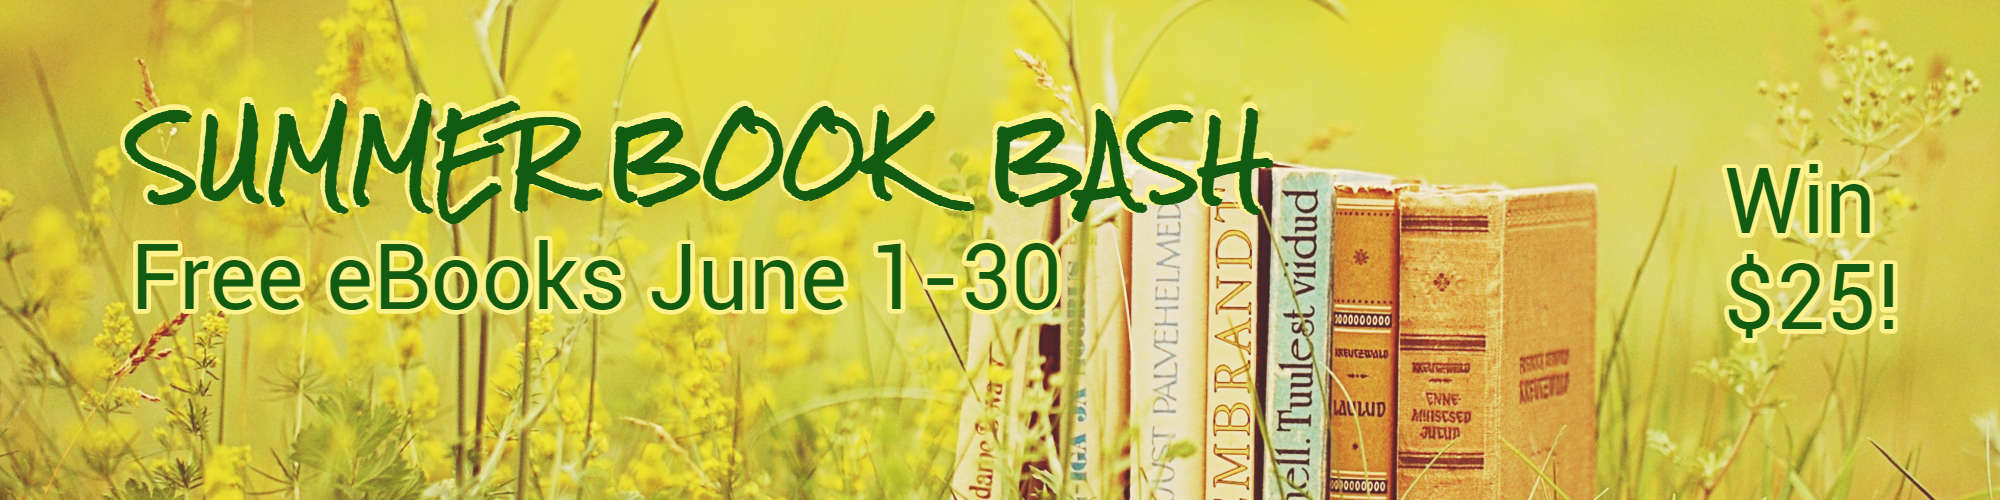 Summer Book Bash